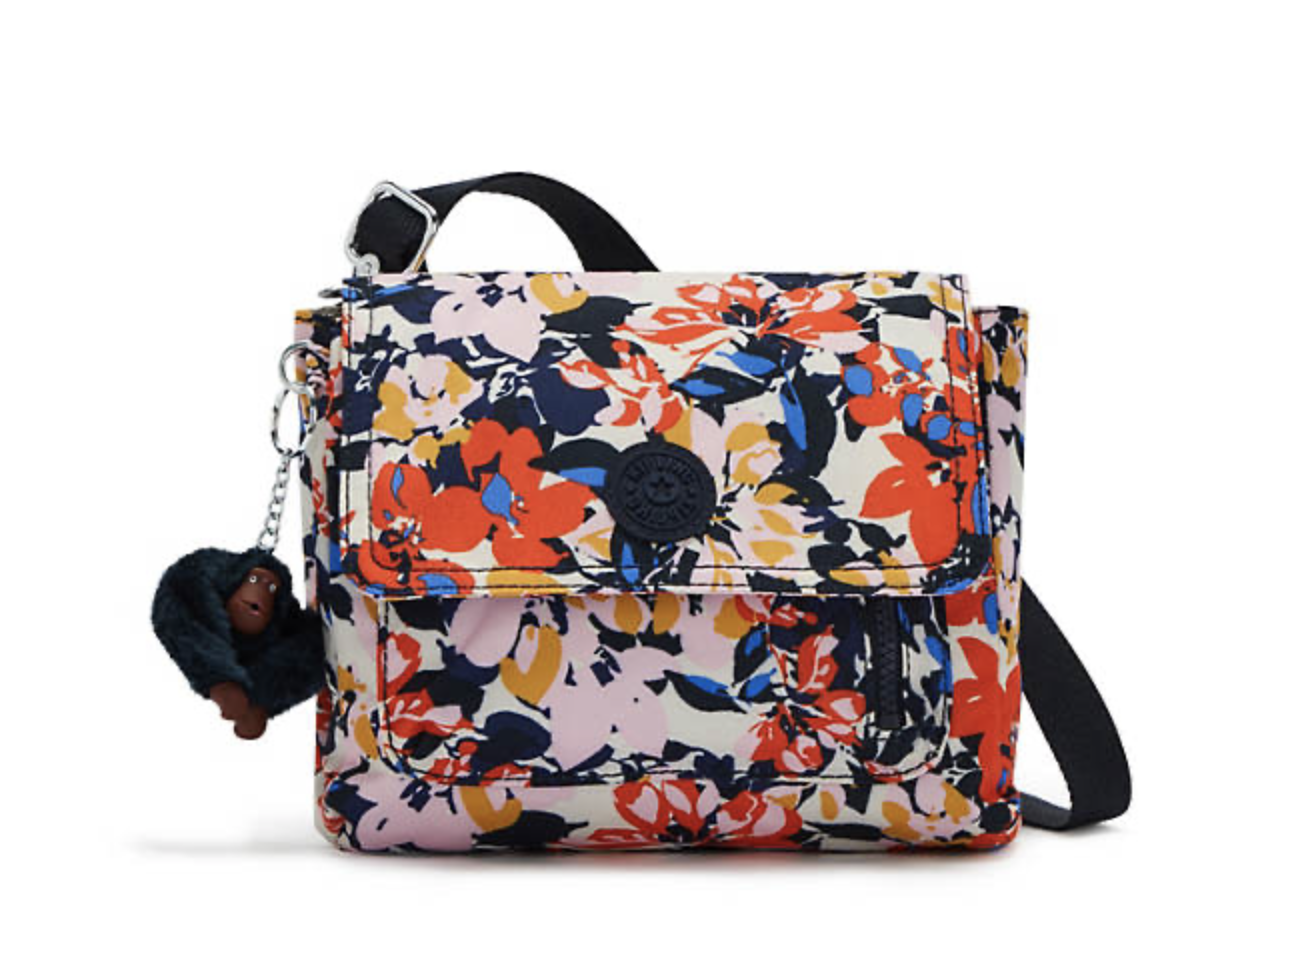 Kipling: 60% off select outlet styles